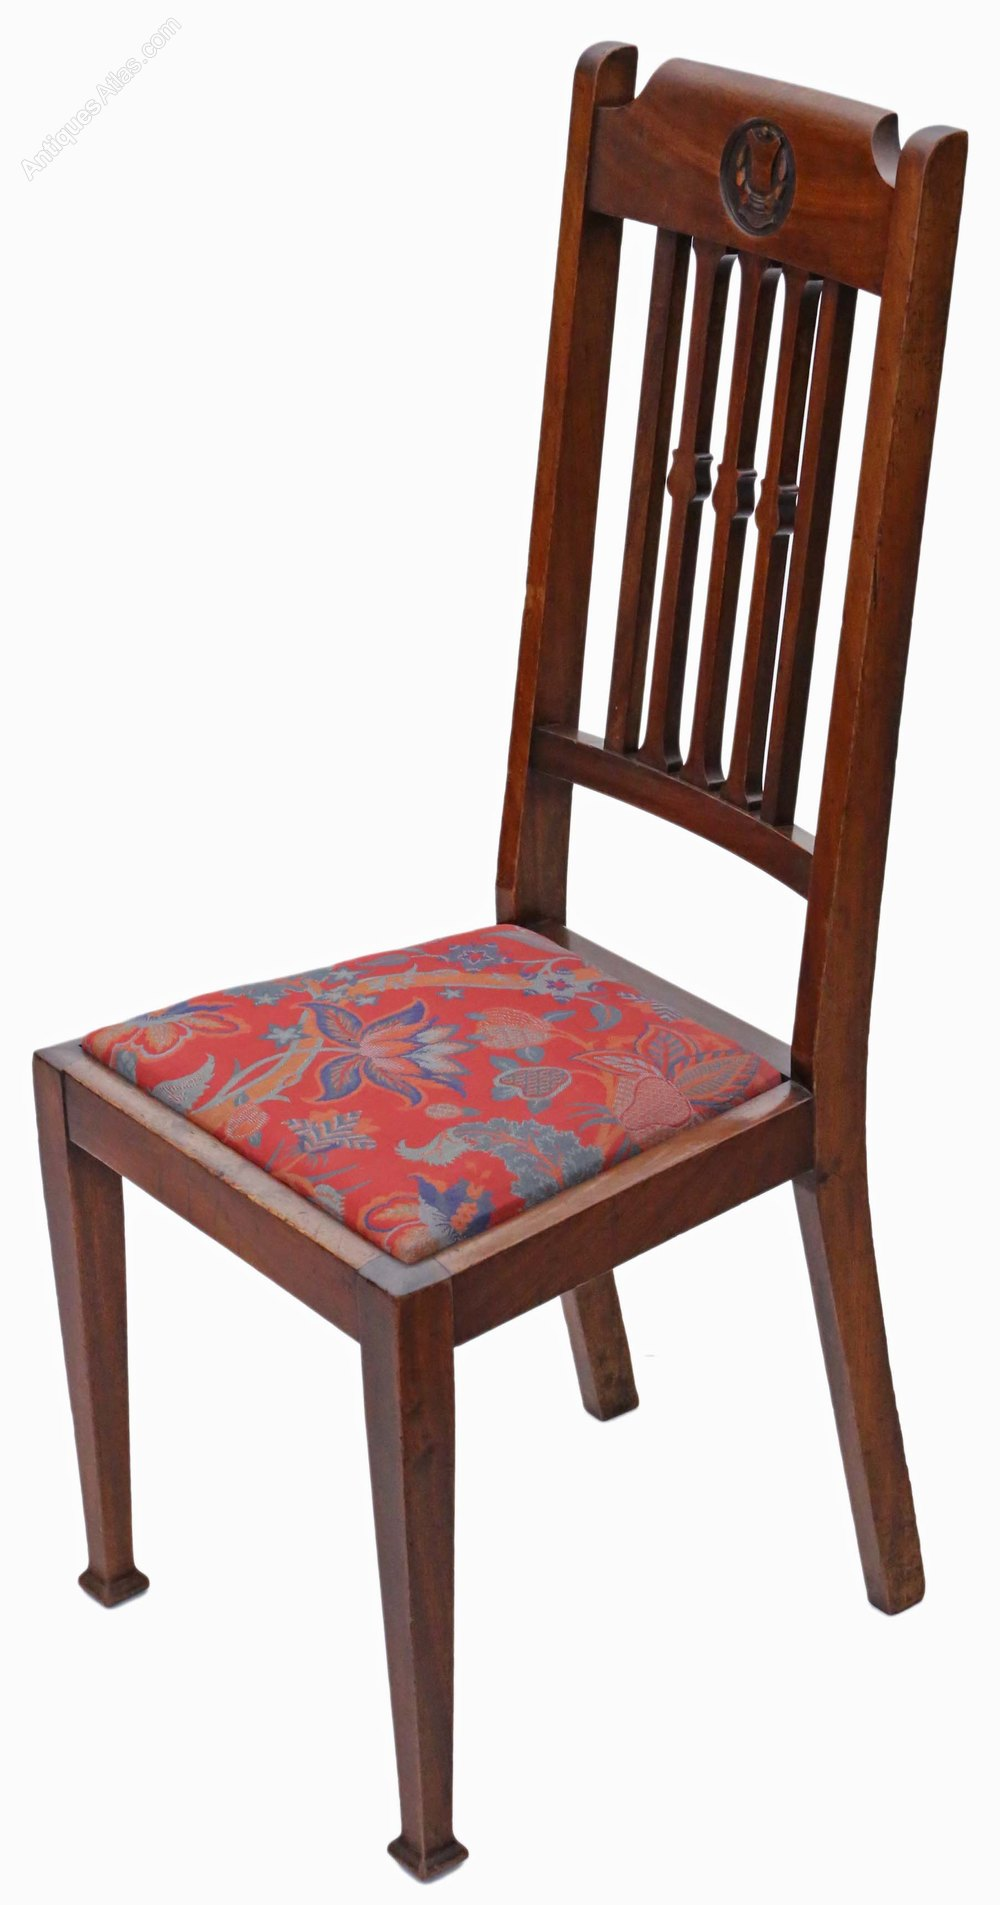 Set Of 6 Mahogany Dining Chairs Art Nouveau C1915 ...